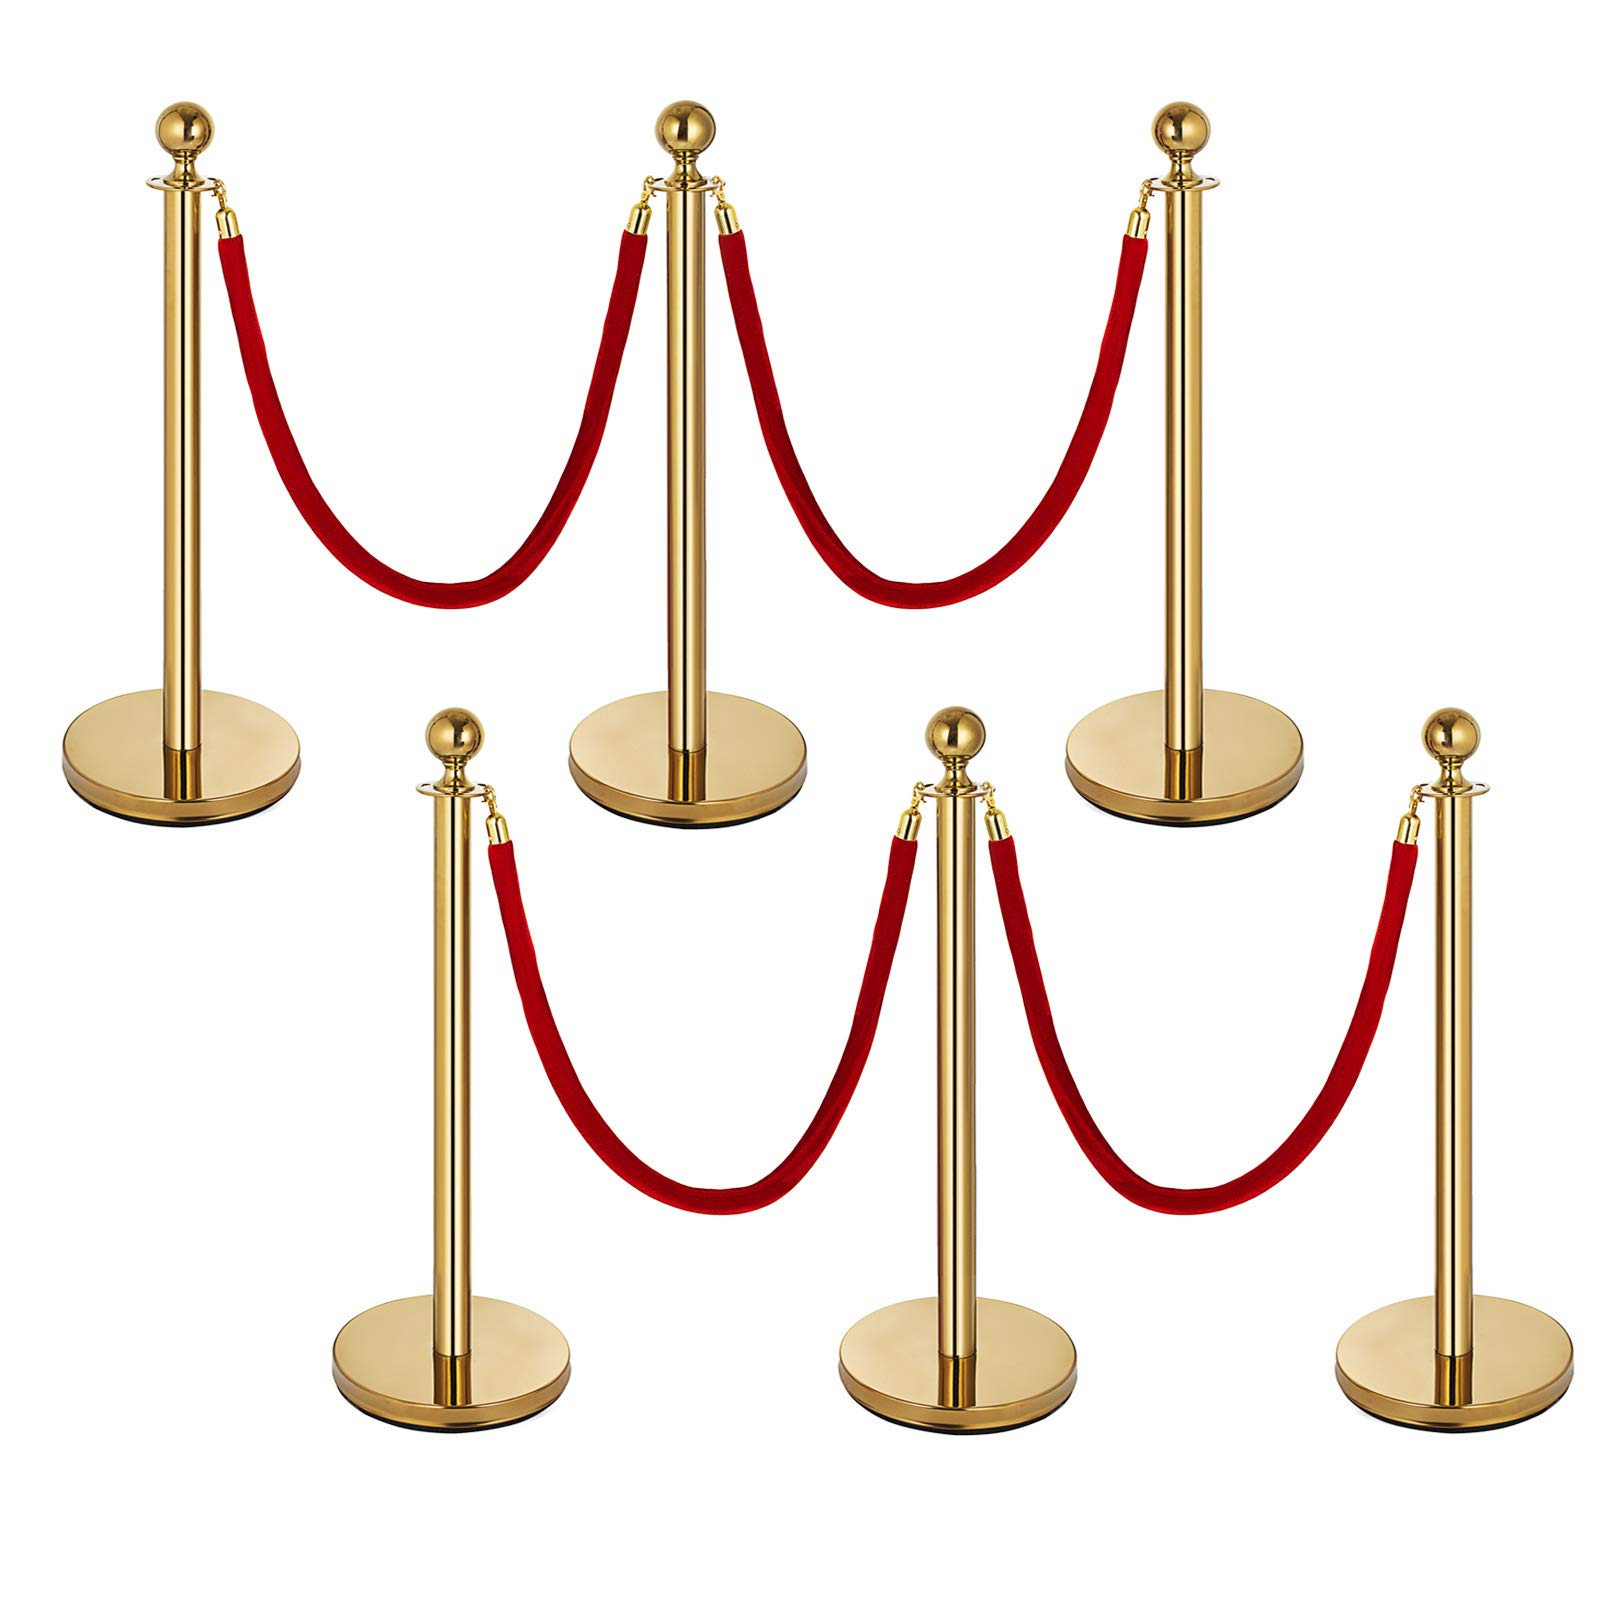 Mophorn 6Pack Gold Stanchion Post Queue Rope Barriers 4 Red Velvet Ropes 38In Crowd Control Barrier Queue Line